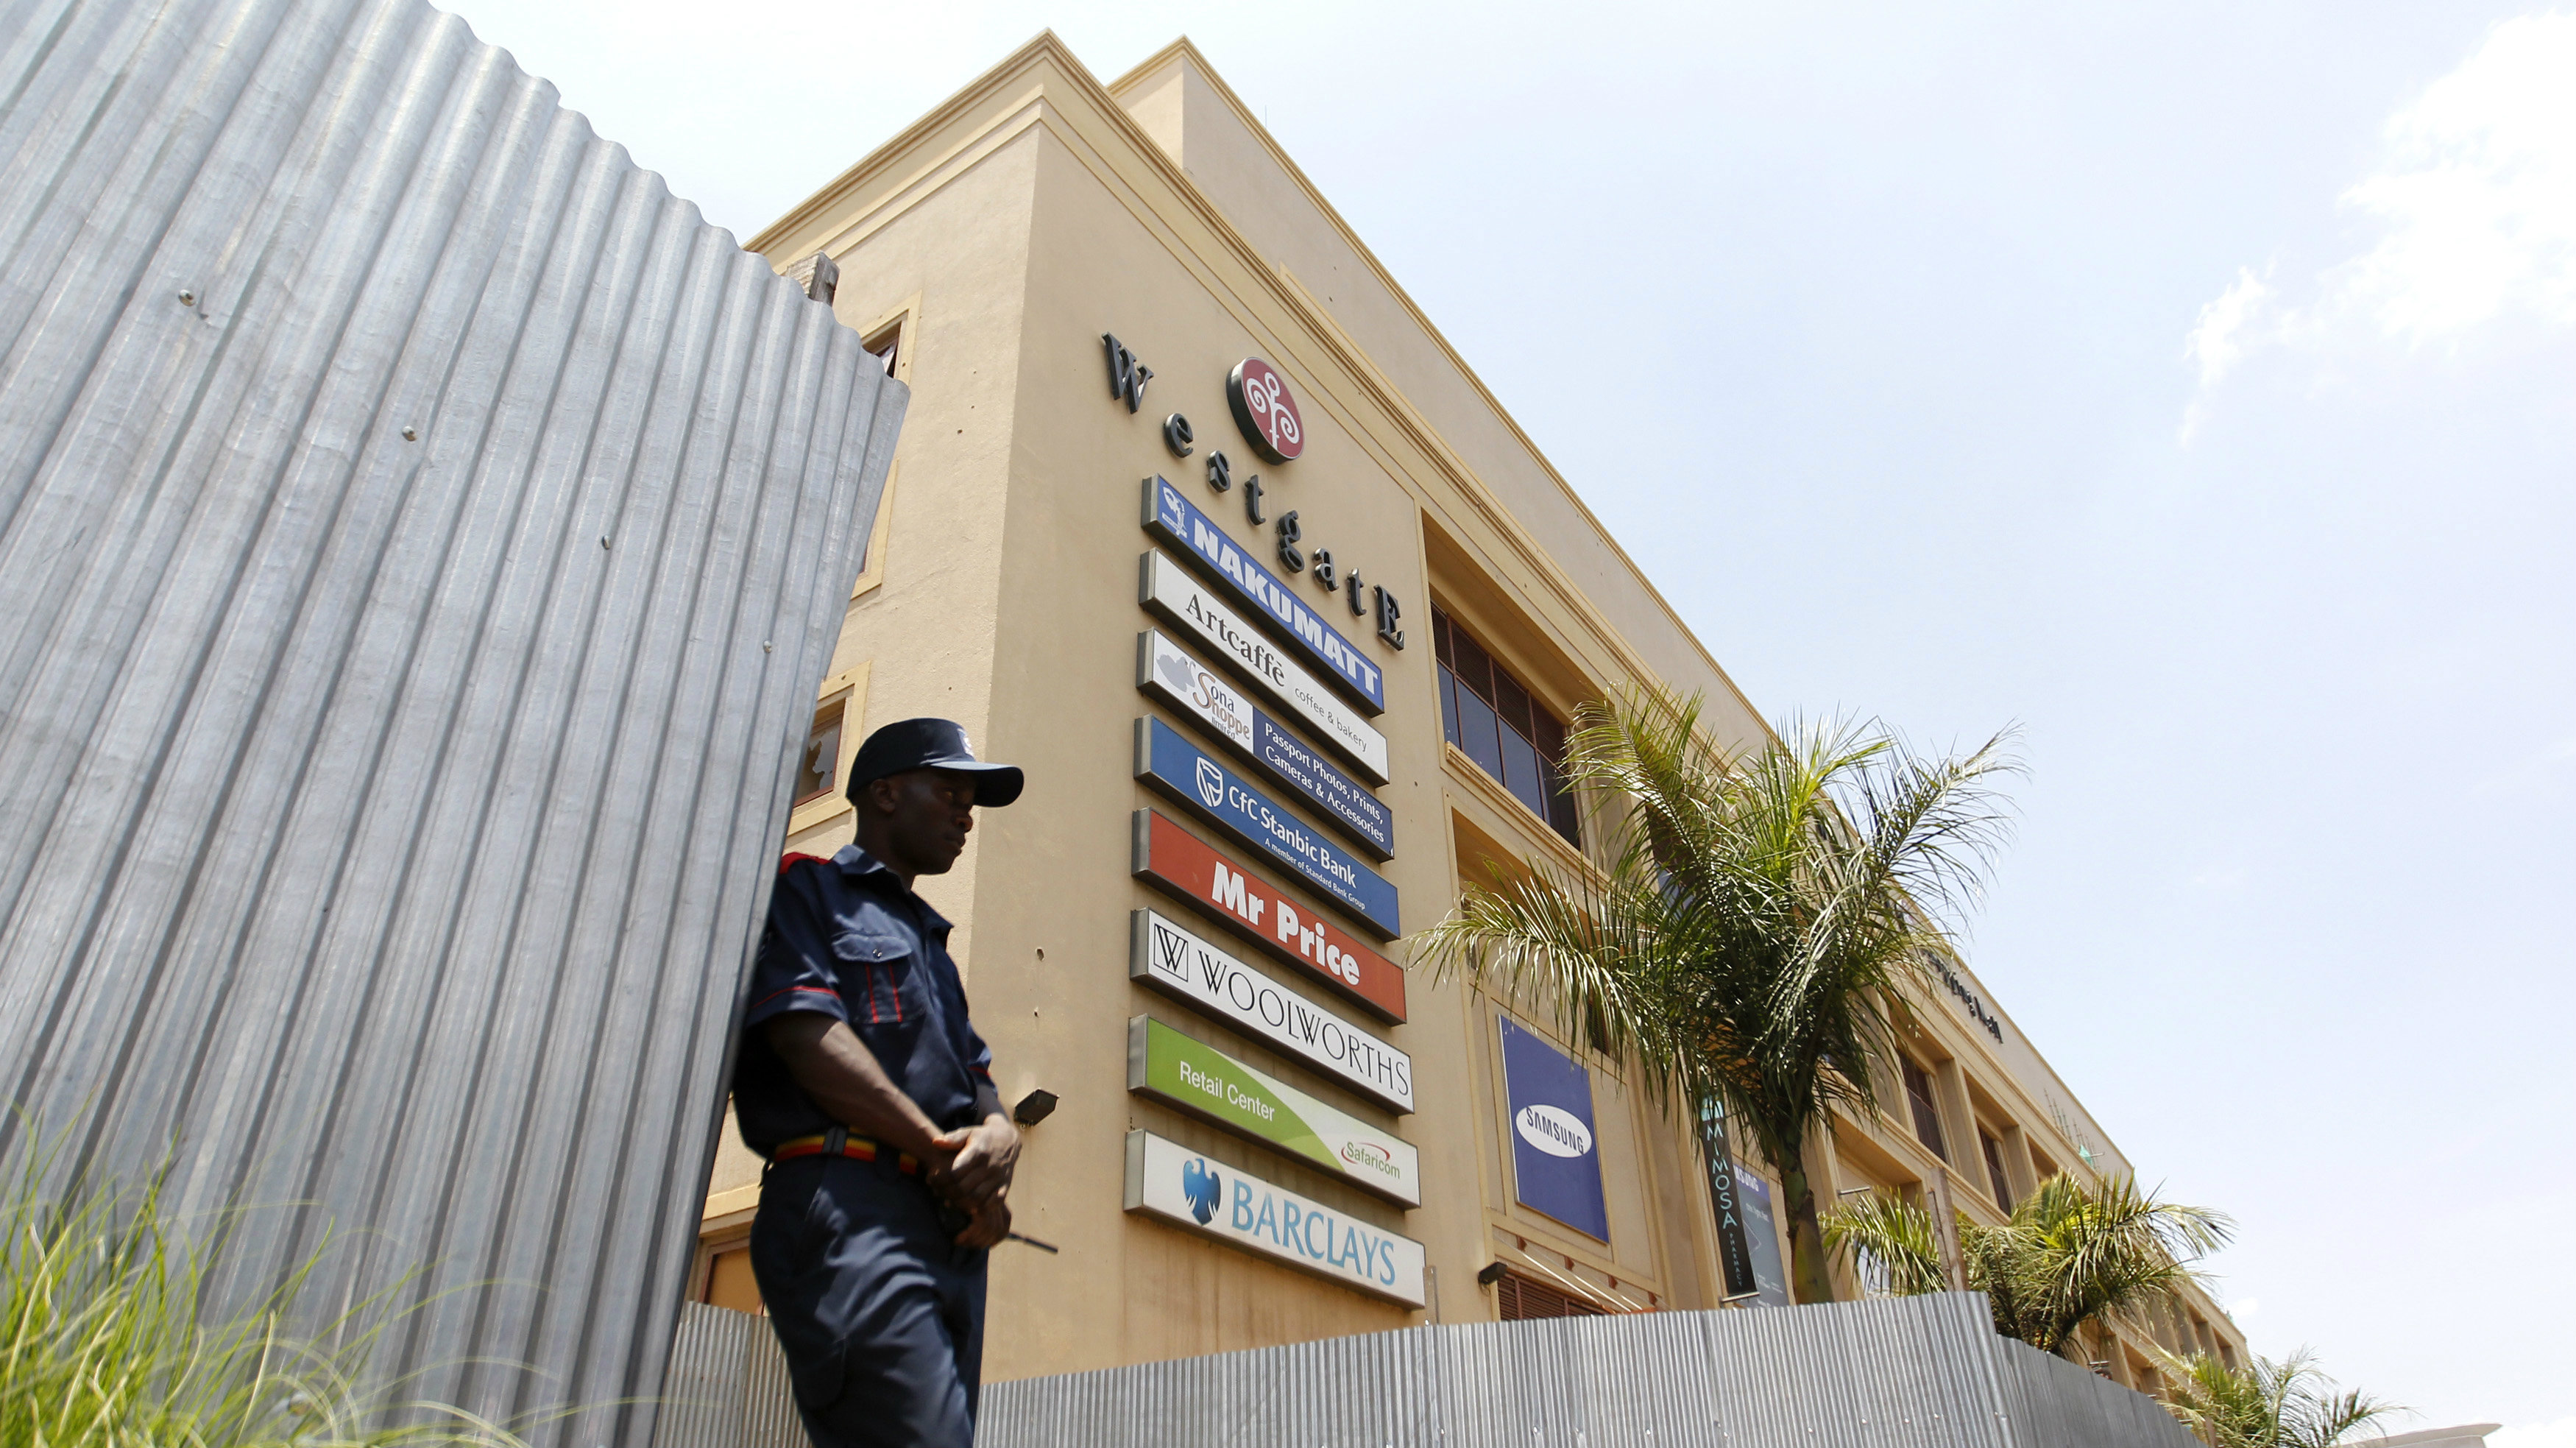 A security guard stands outside the Westgate shopping mall that has been left deserted following last year's attack by gunmen in Nairobi.